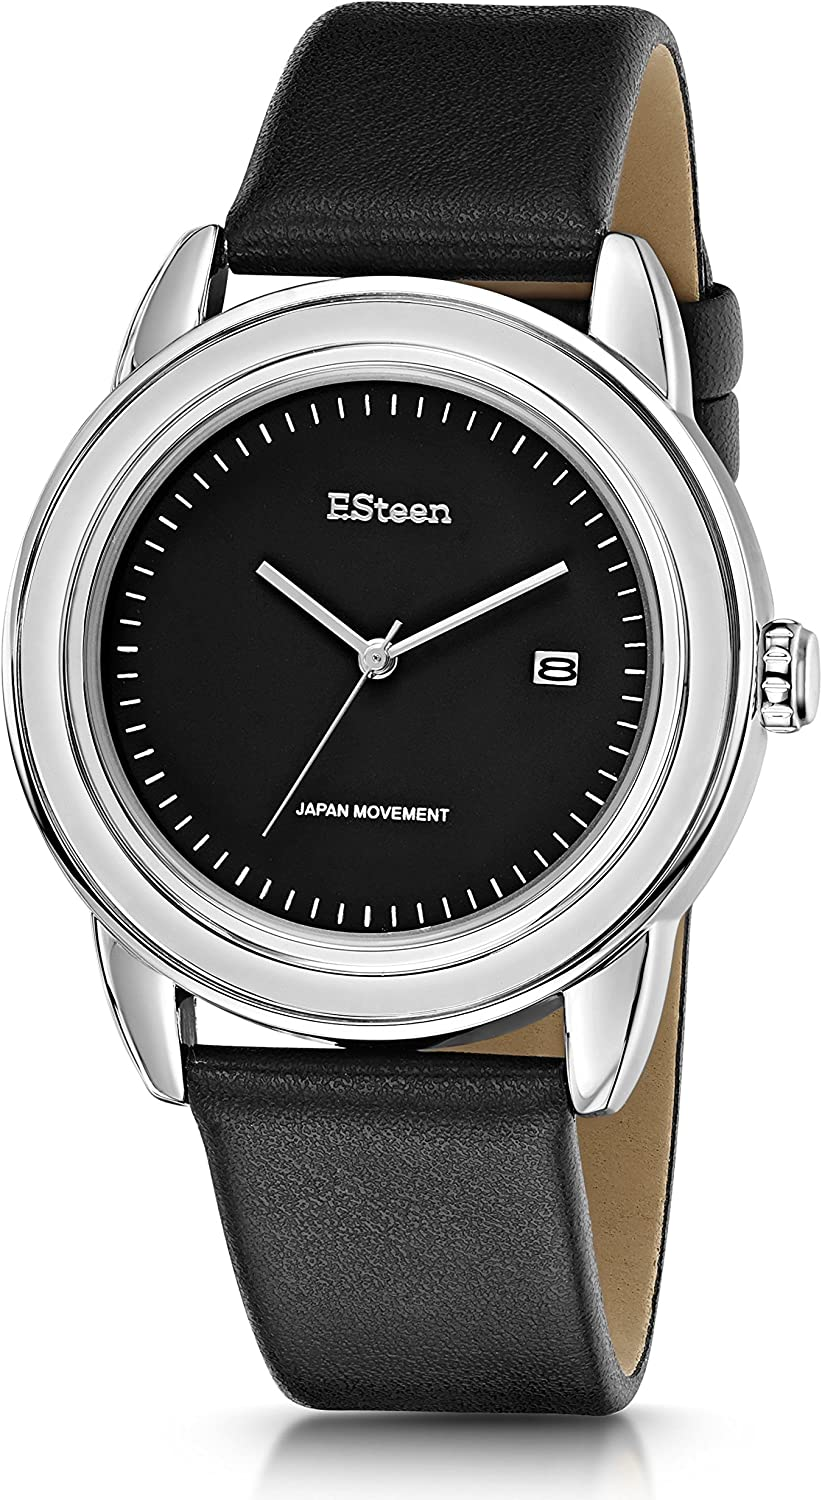 F.Steen Men s Summit -FS3D3 Japan Quartz Trendy Look Silver Case Fashion Analog Watch with Genuine Leather Band